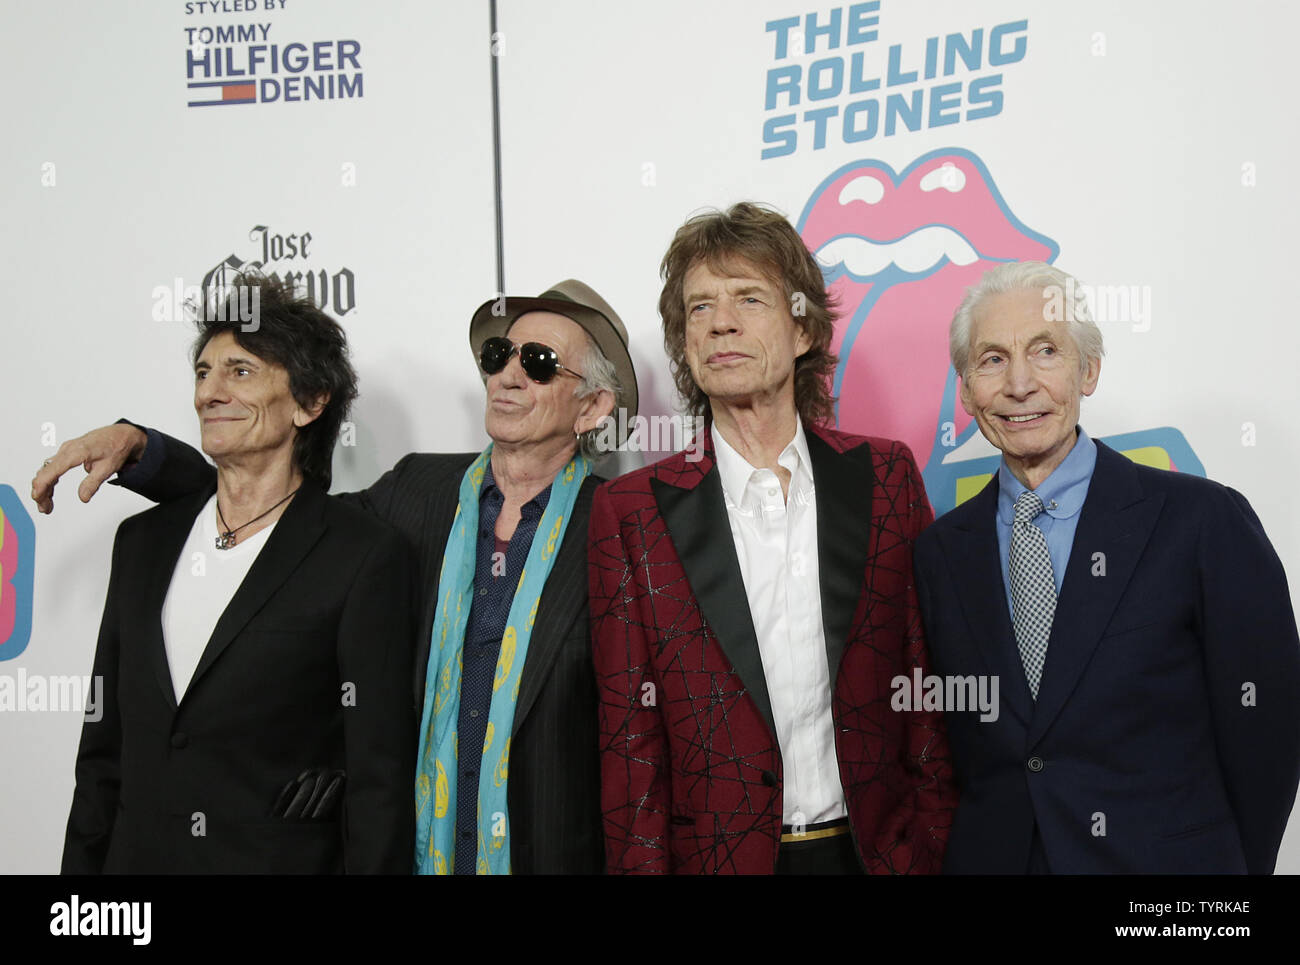 The Rolling Stones band members Ron Wood, Keith Richards